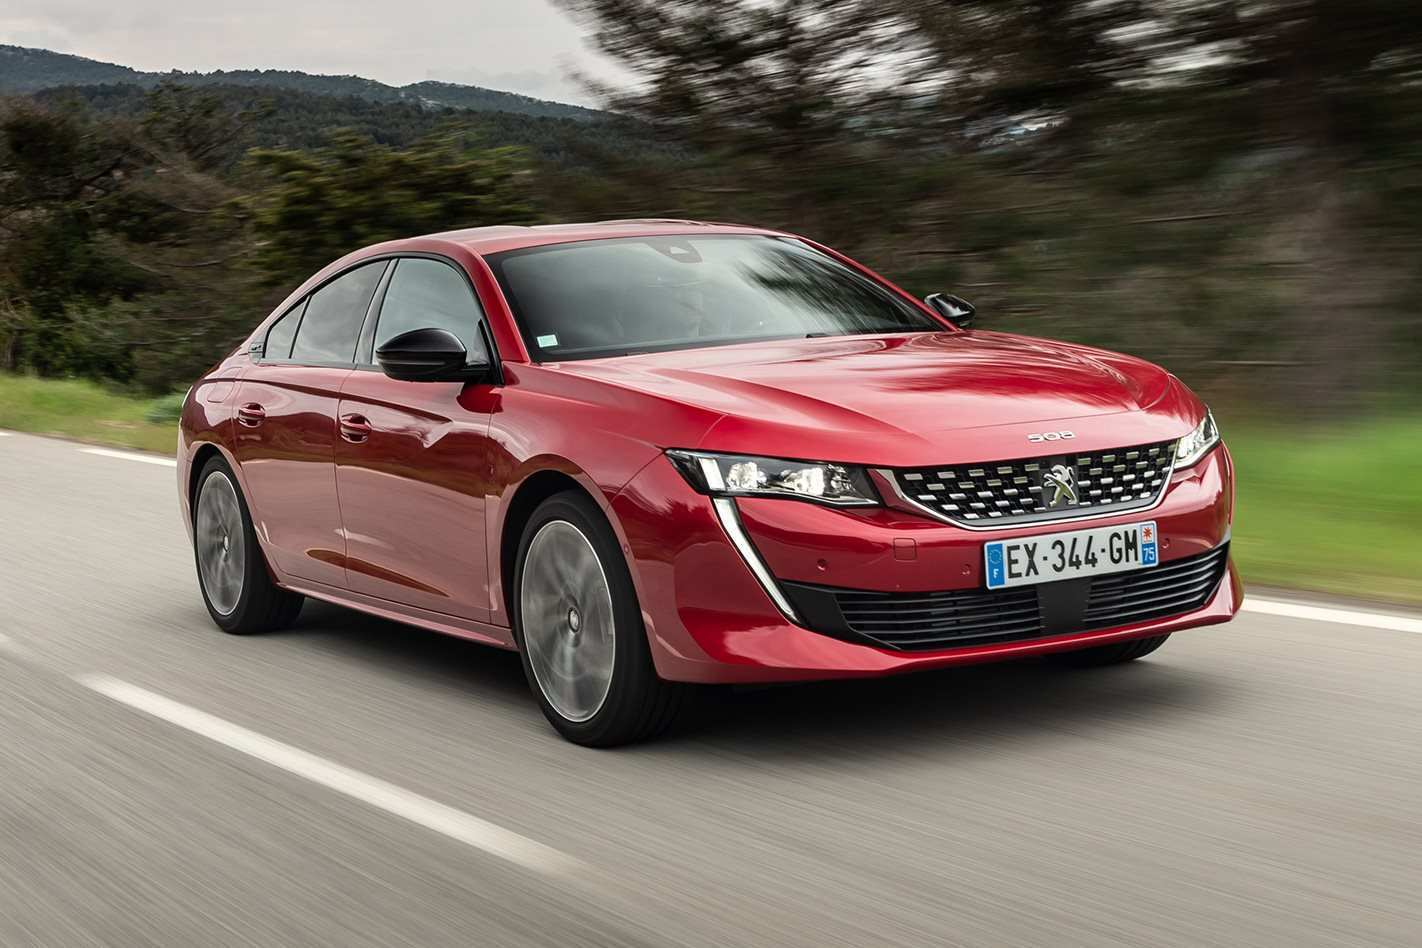 87 All New Peugeot En 2019 Redesign And Review